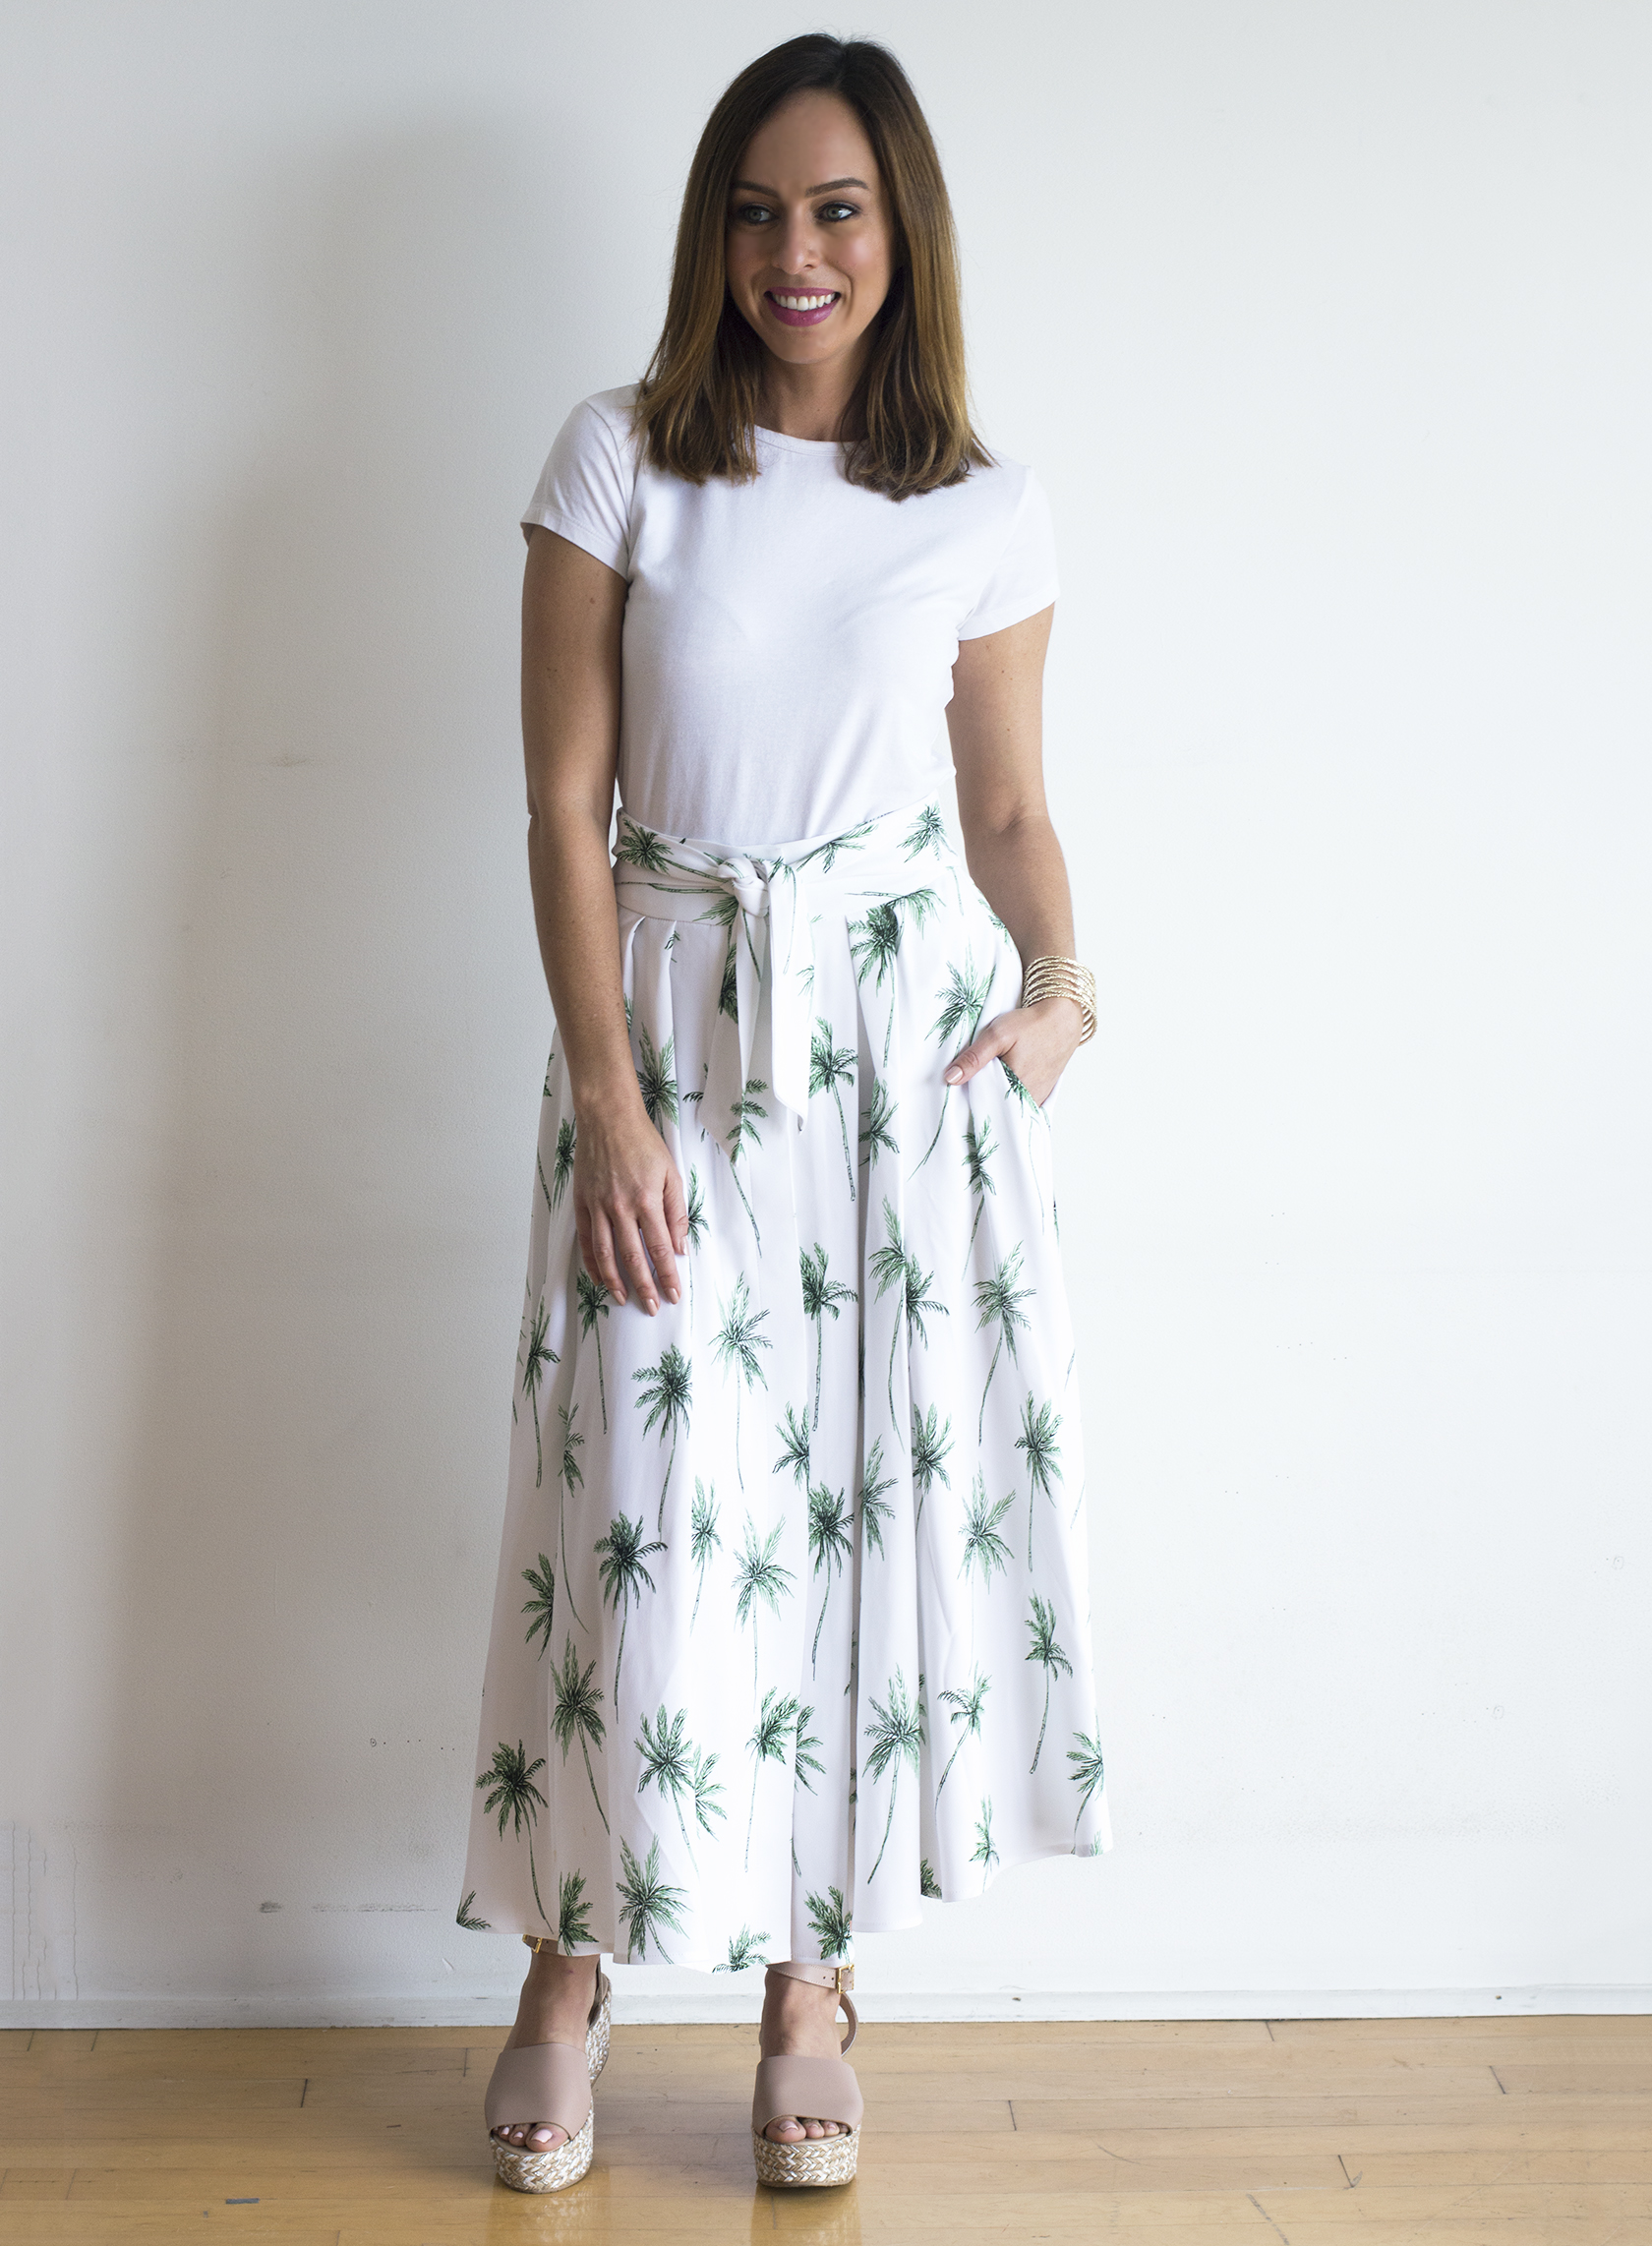 Sydne Style shows how to wear summer prints in milly palm tree skirt